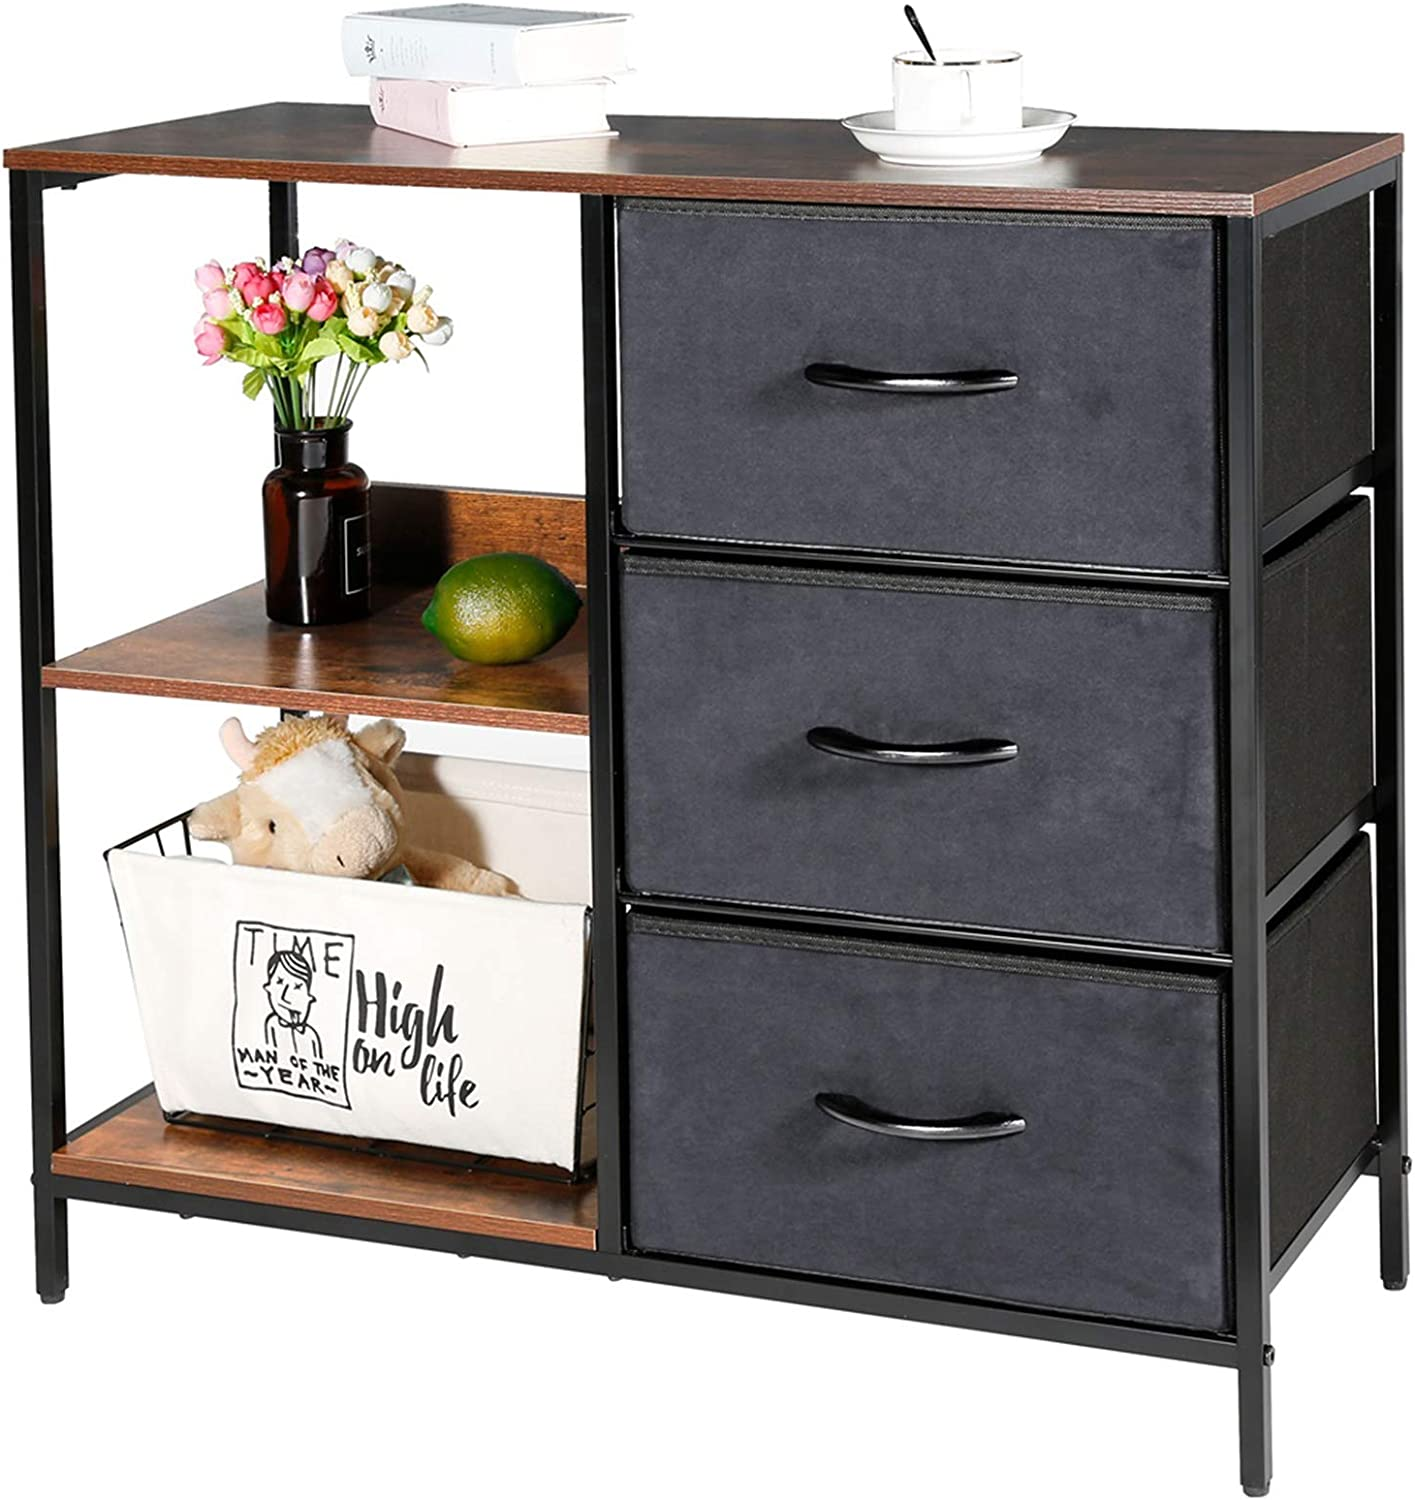 Kamiler Storage Cabinet with 3 Drawers, Floor Cabinet with 2-Tier Shelves, Dresser Organizer Furniture Tower for Bedroom, Living Room, Hallway, Sturdy Steel Frame, Wood Top